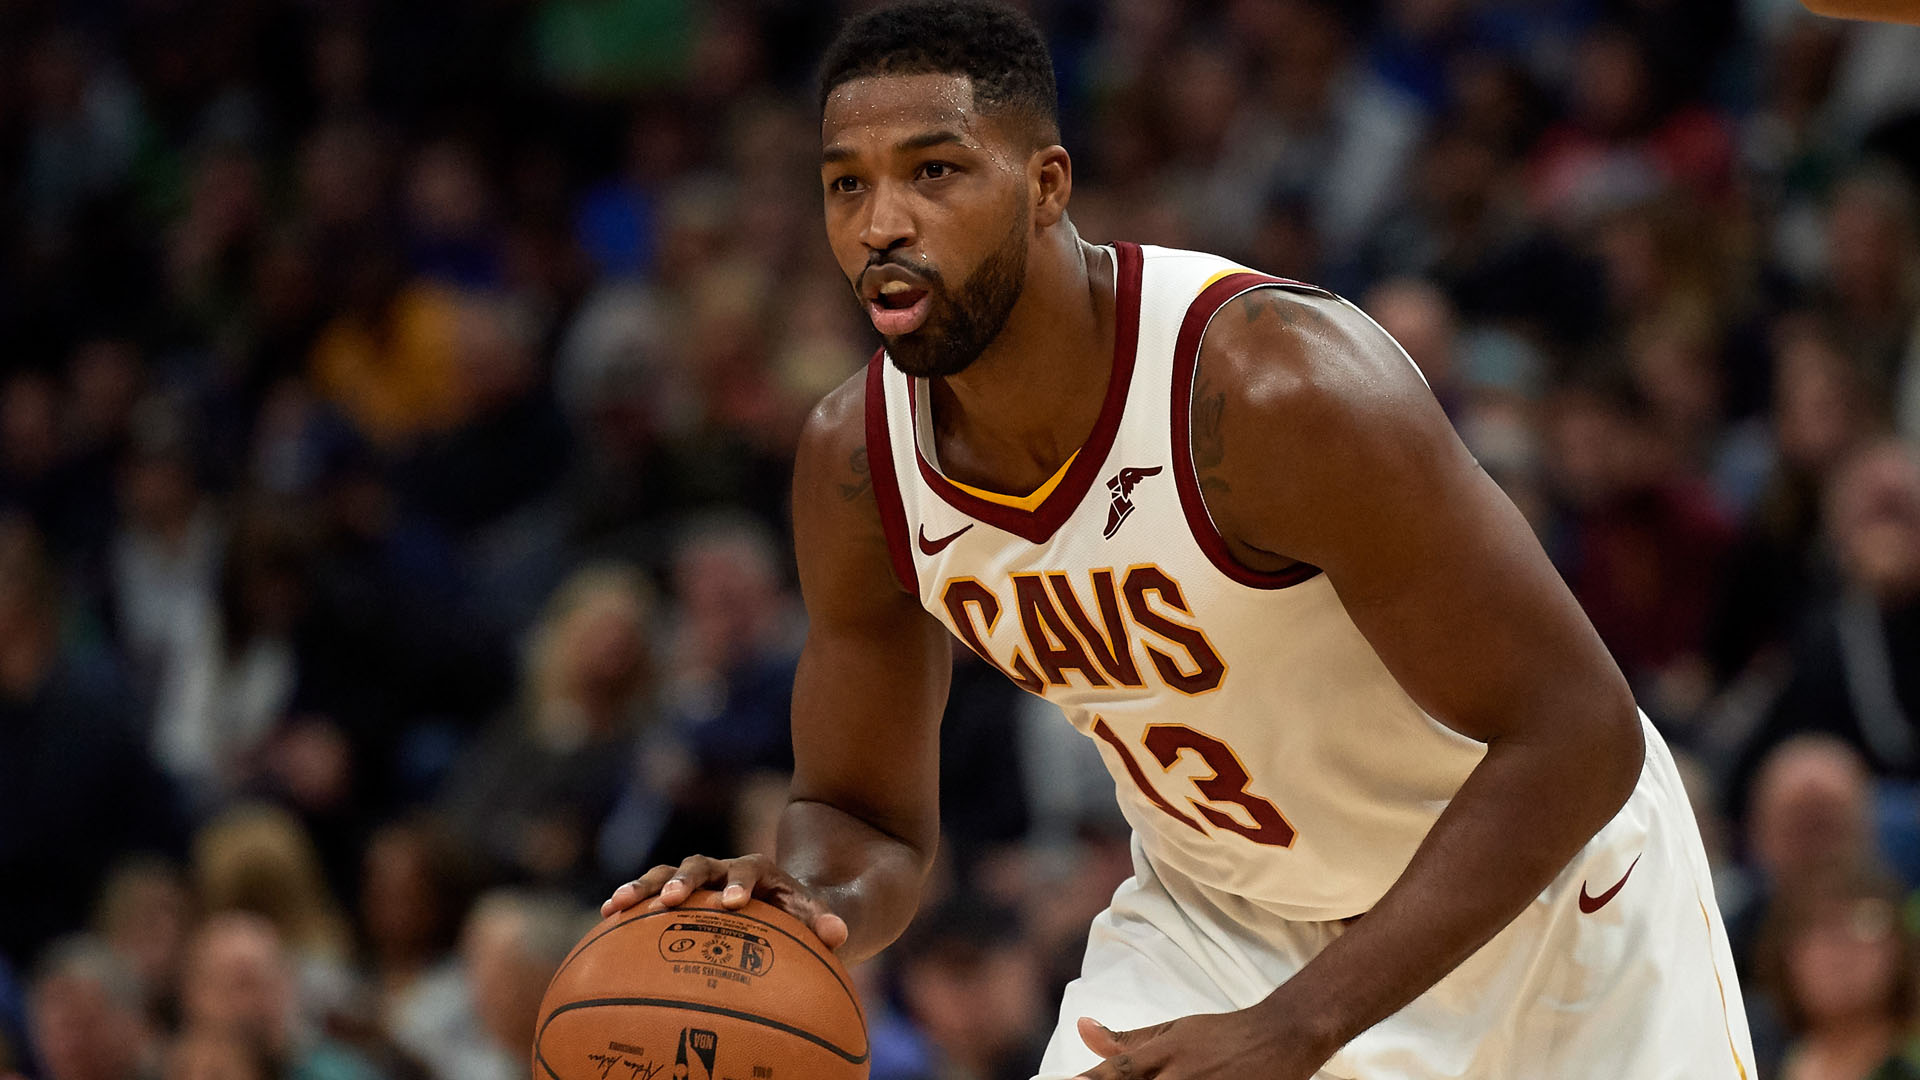 Tristan Thompson injury update: Cavs C (foot) expected to miss 2-4 weeks, report says